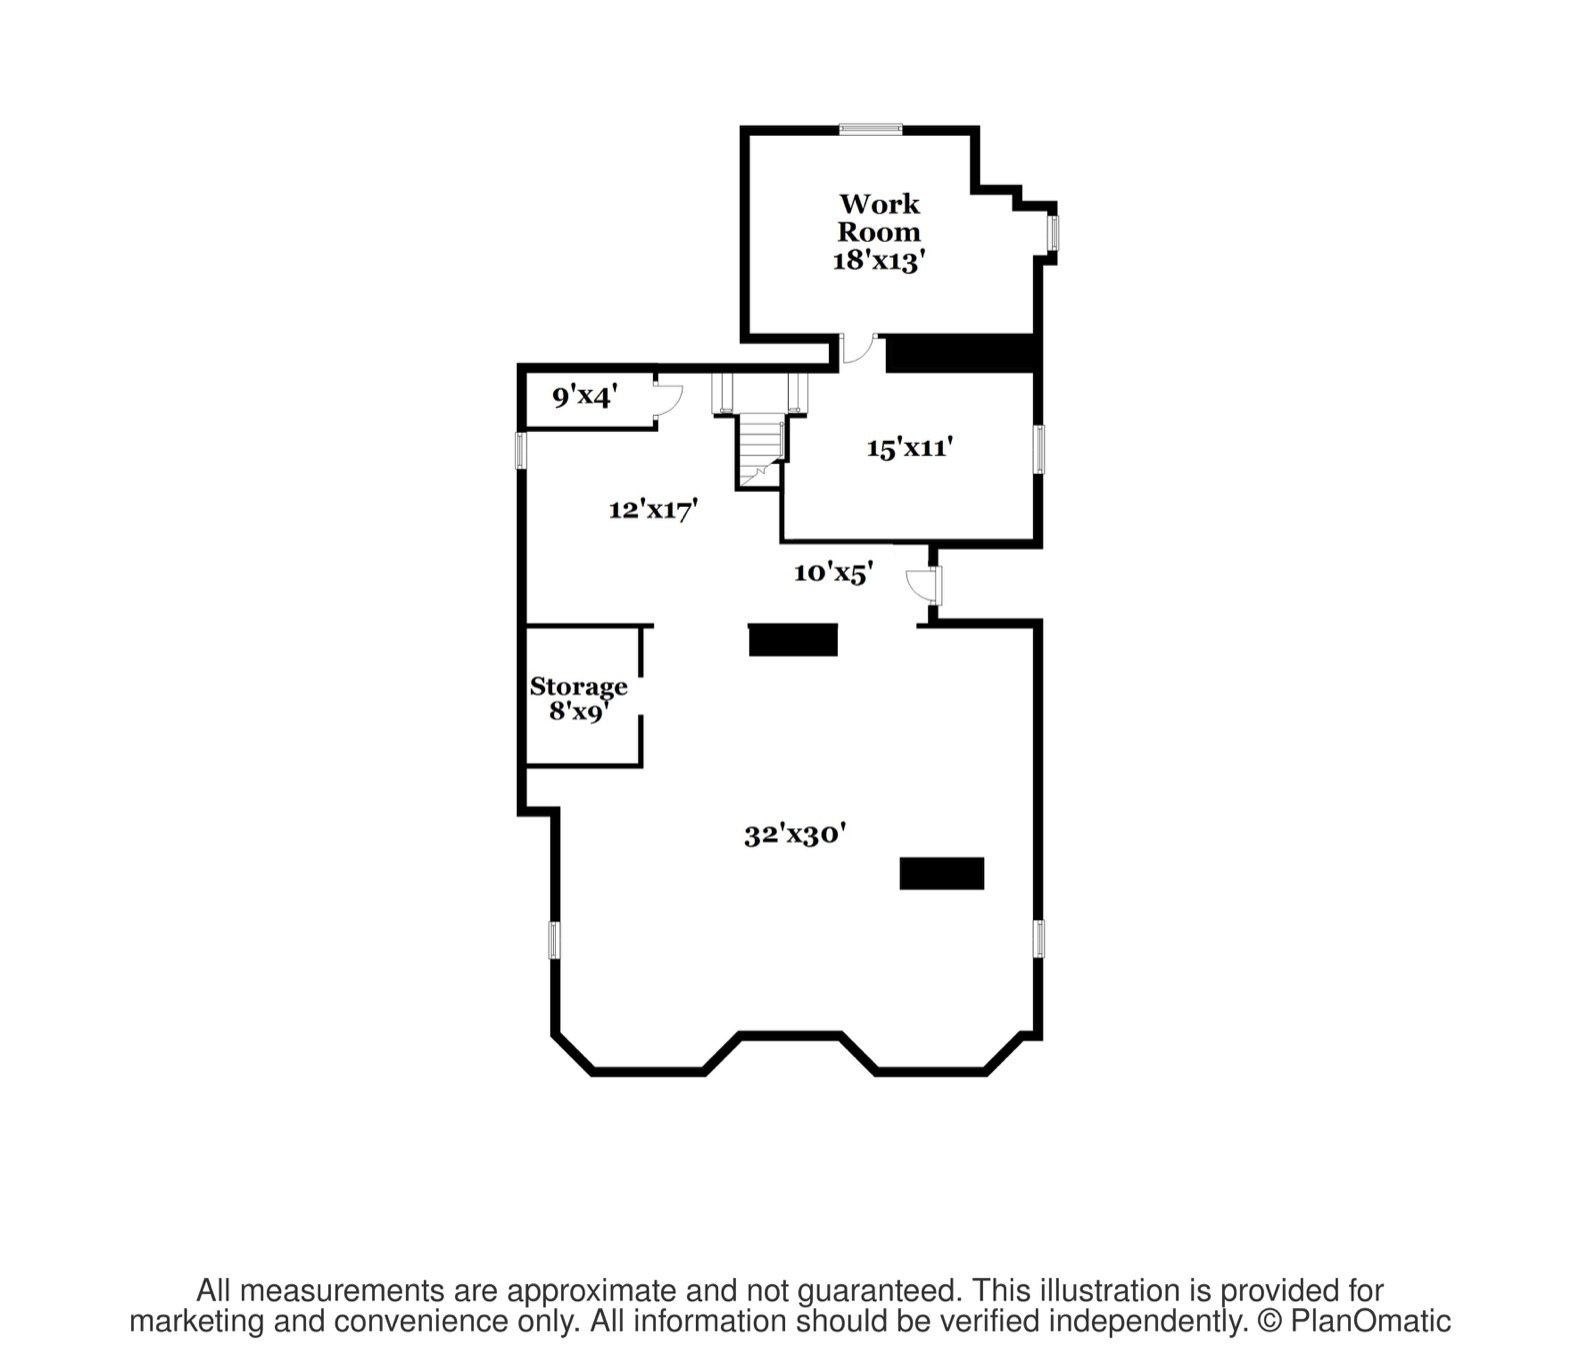 W. Irving Clark House basement floor plan